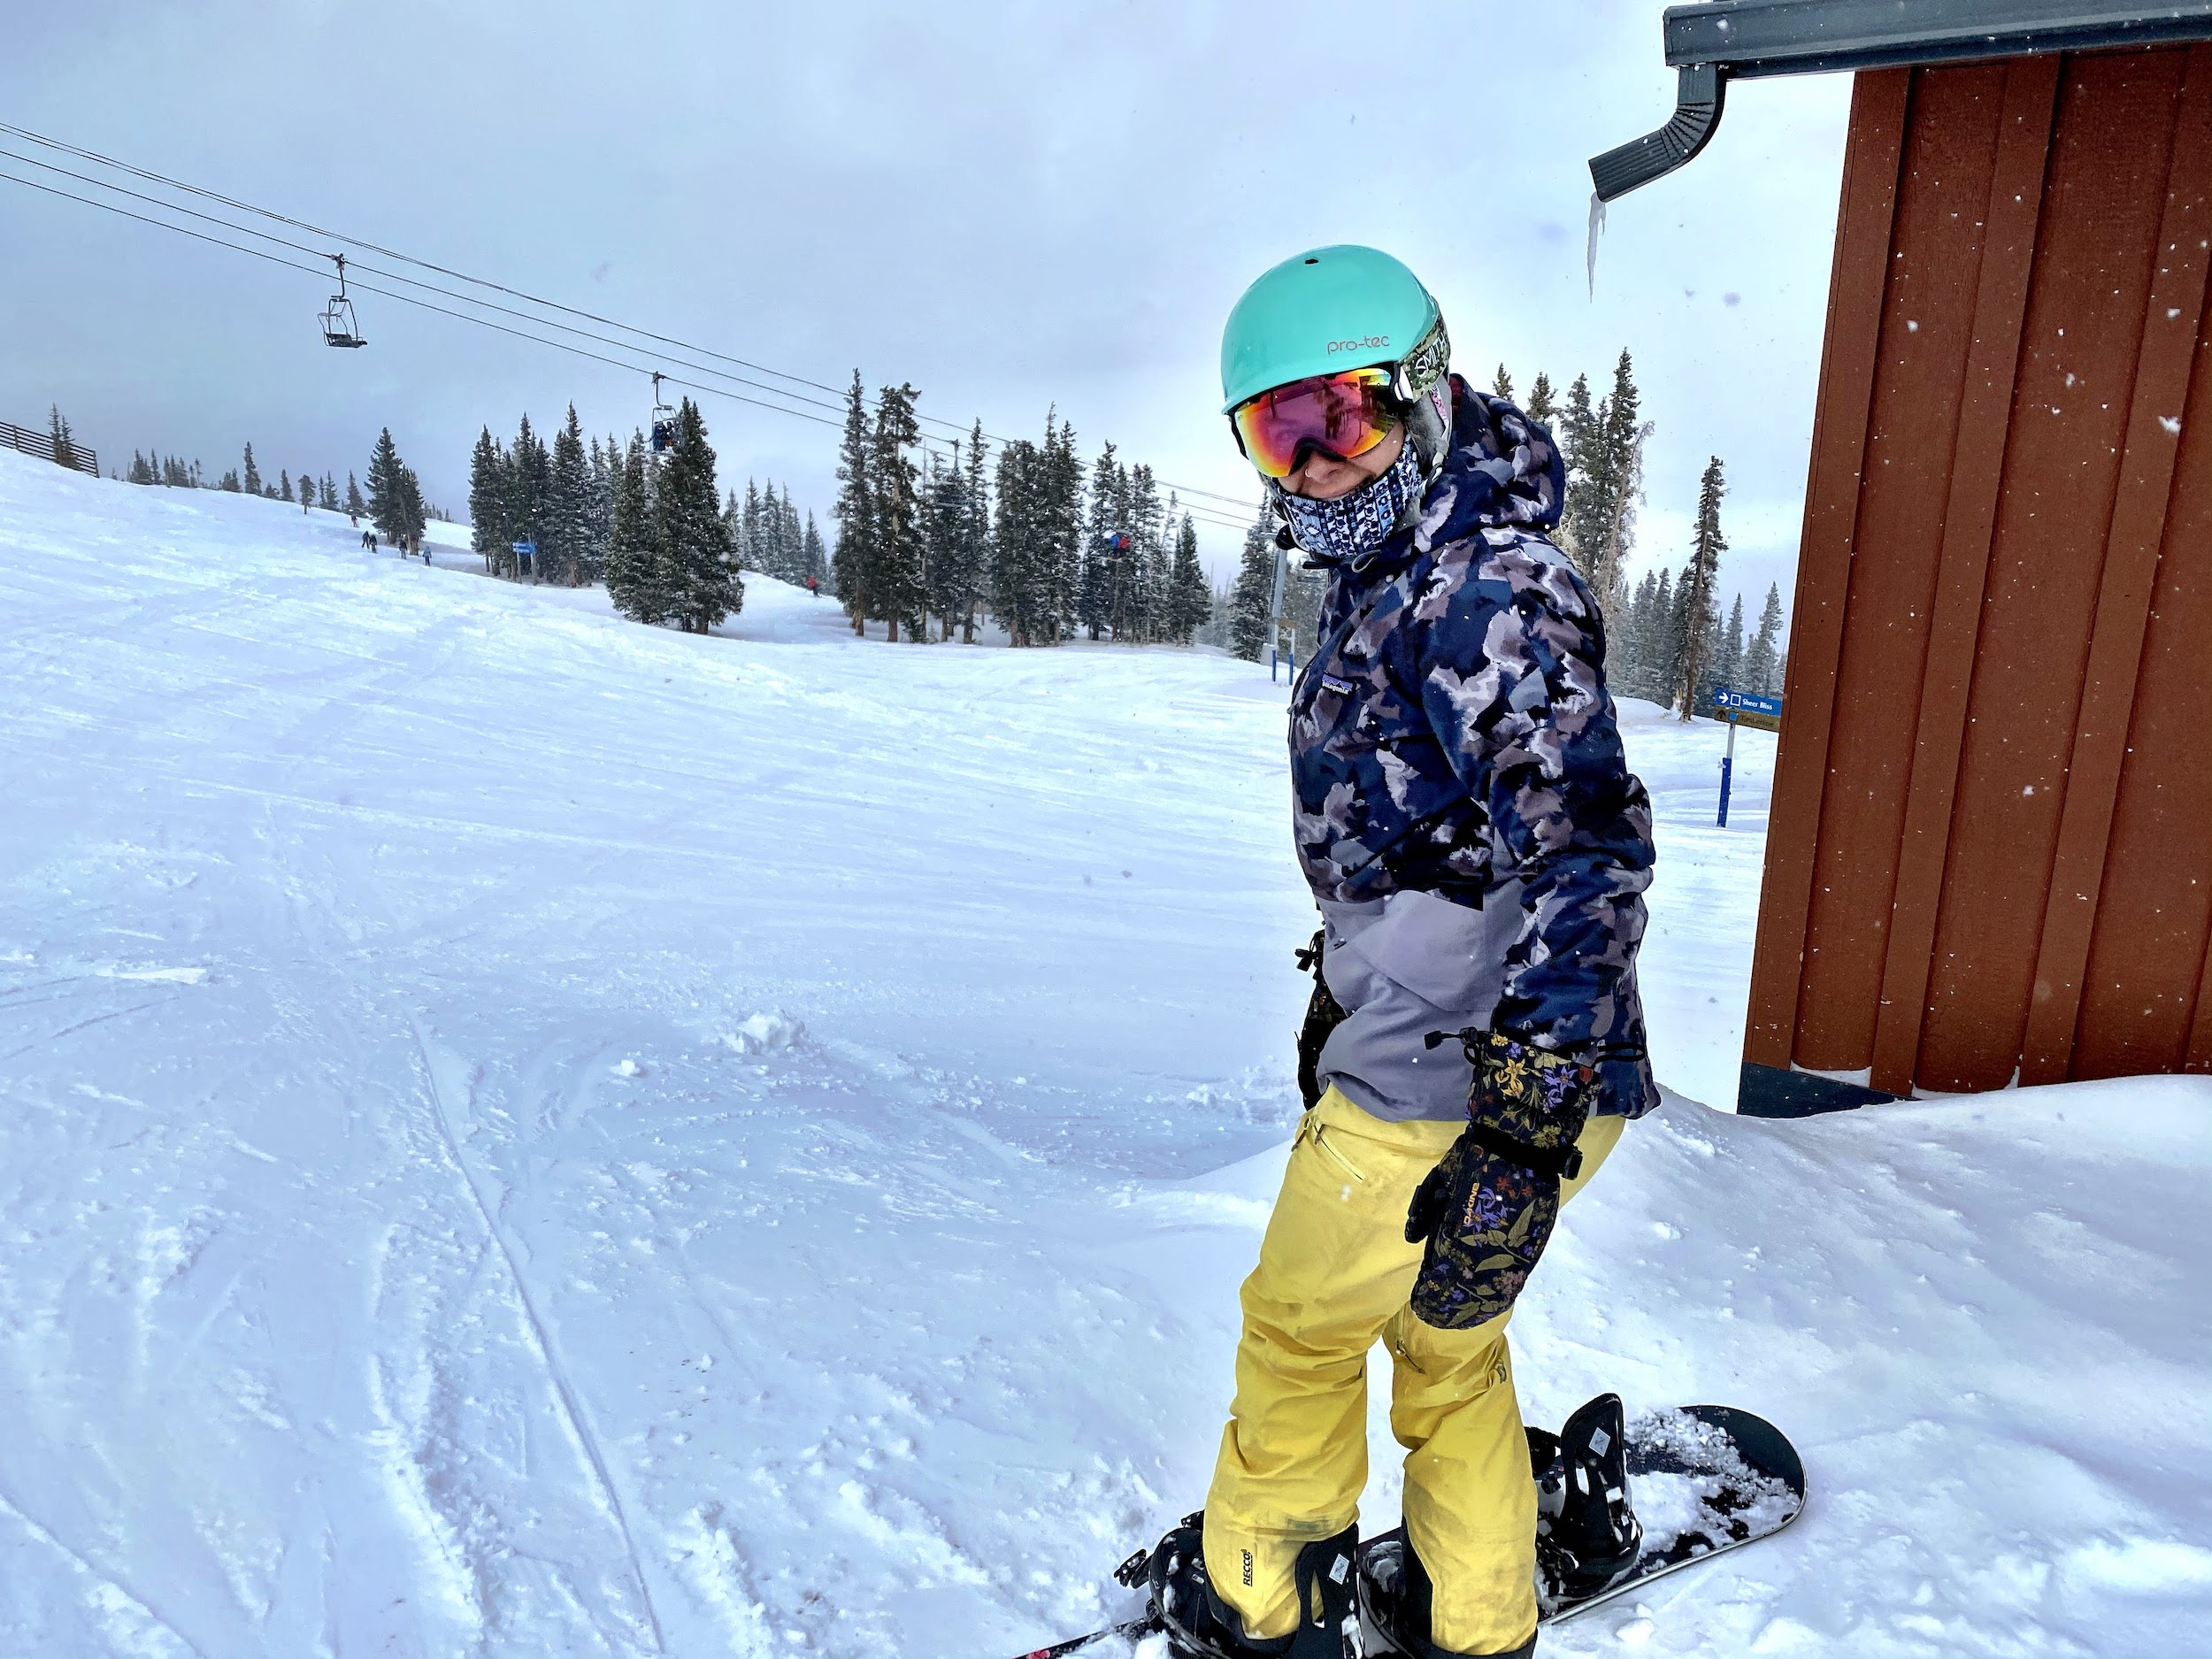 Emily getting ready to rip at Snowmass